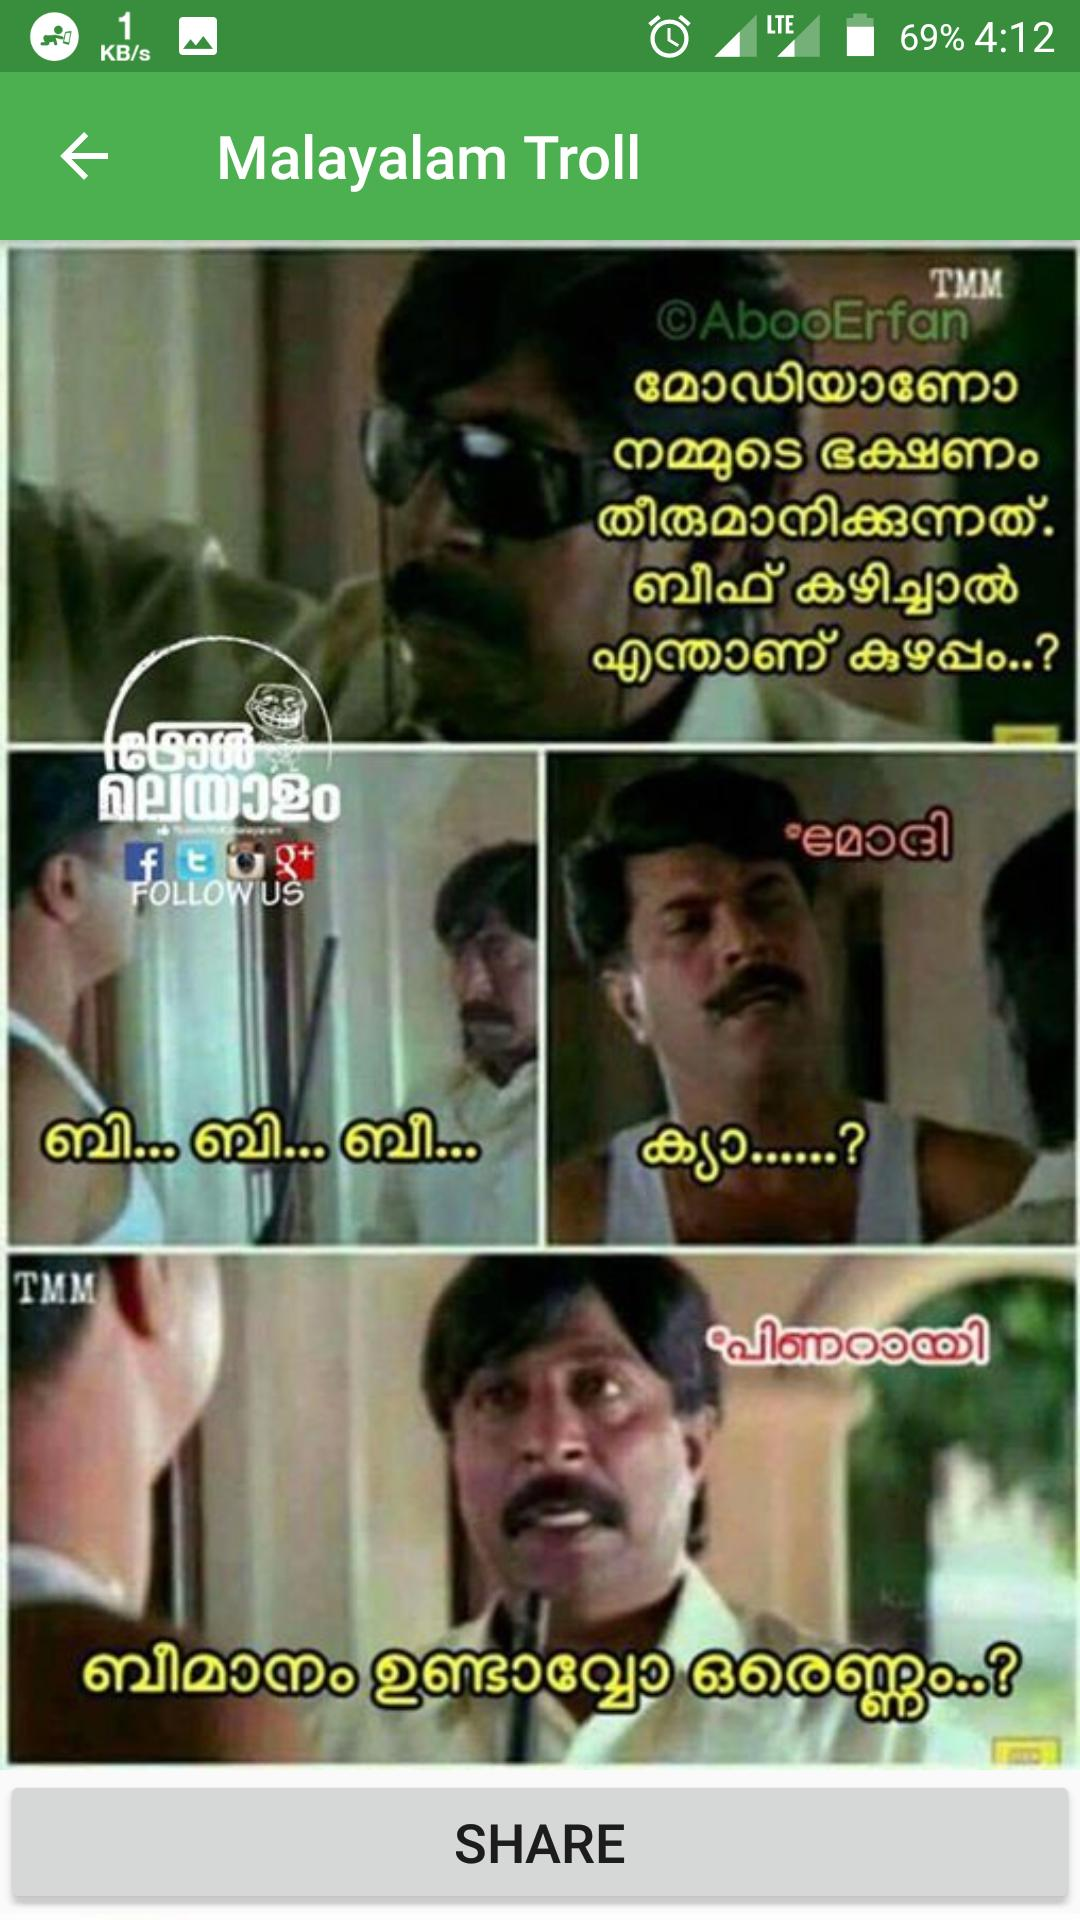 Malayalam Troll For Android Apk Download